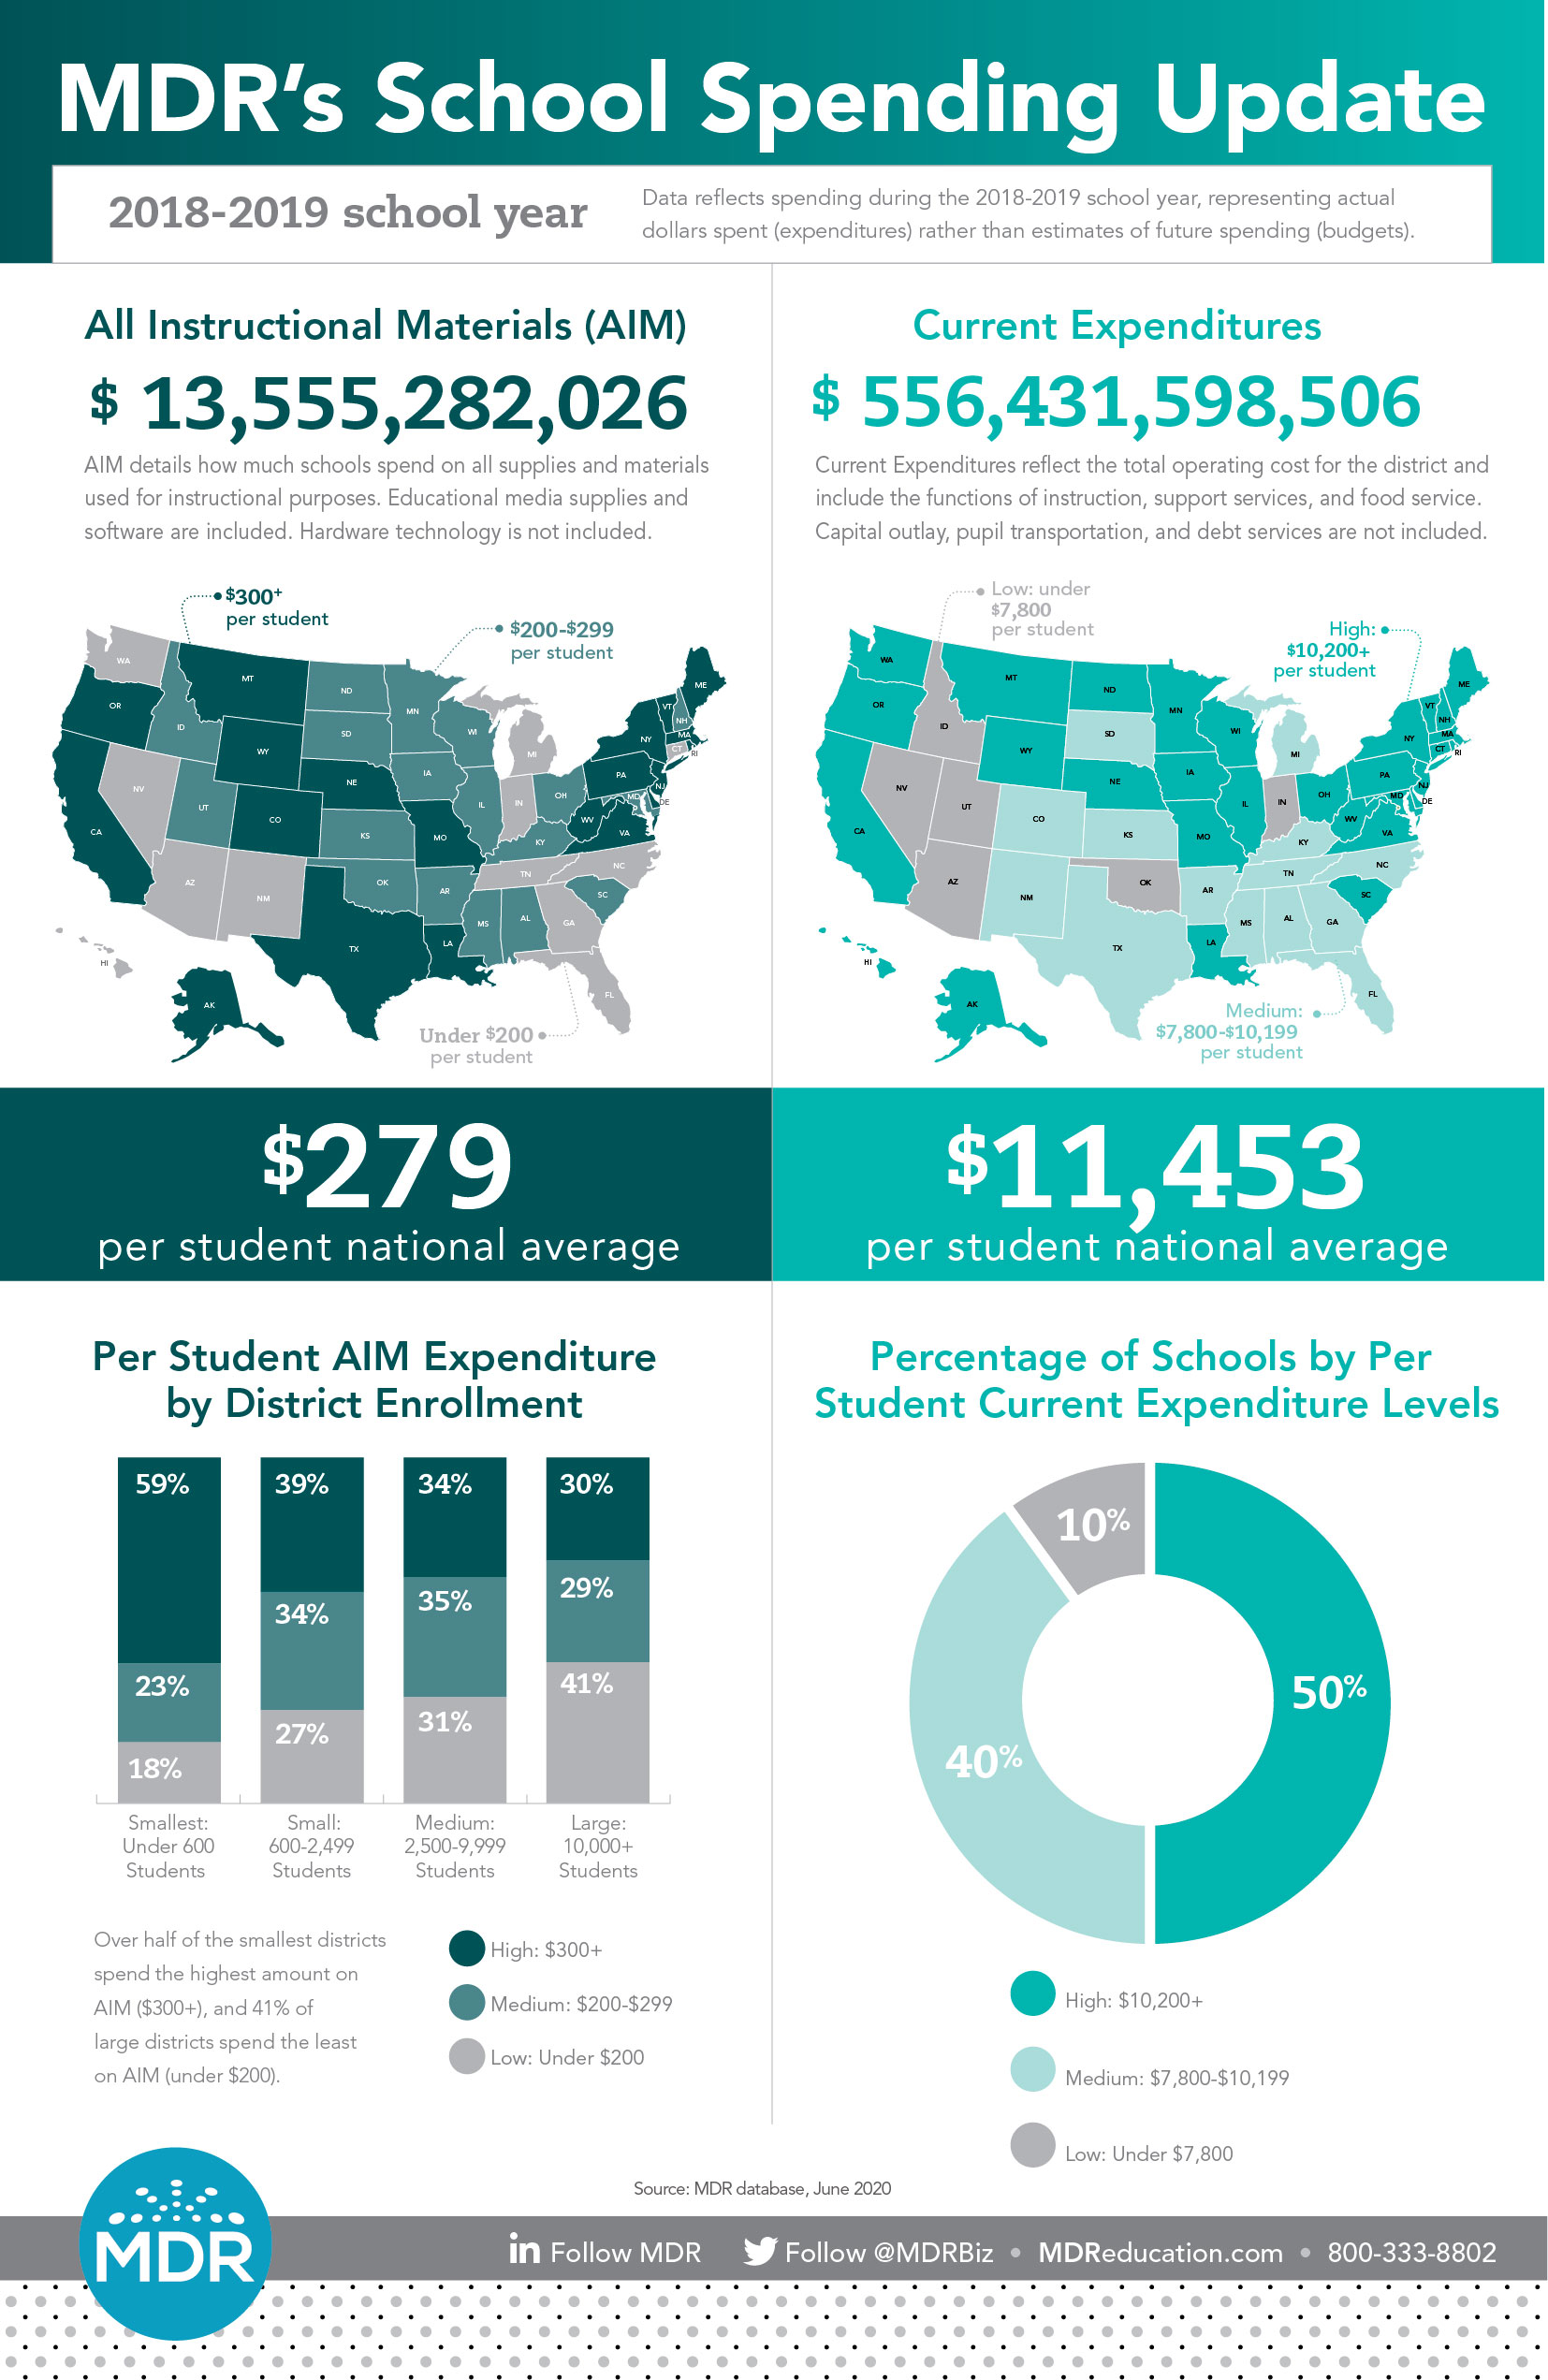 MDR's School Spending Update